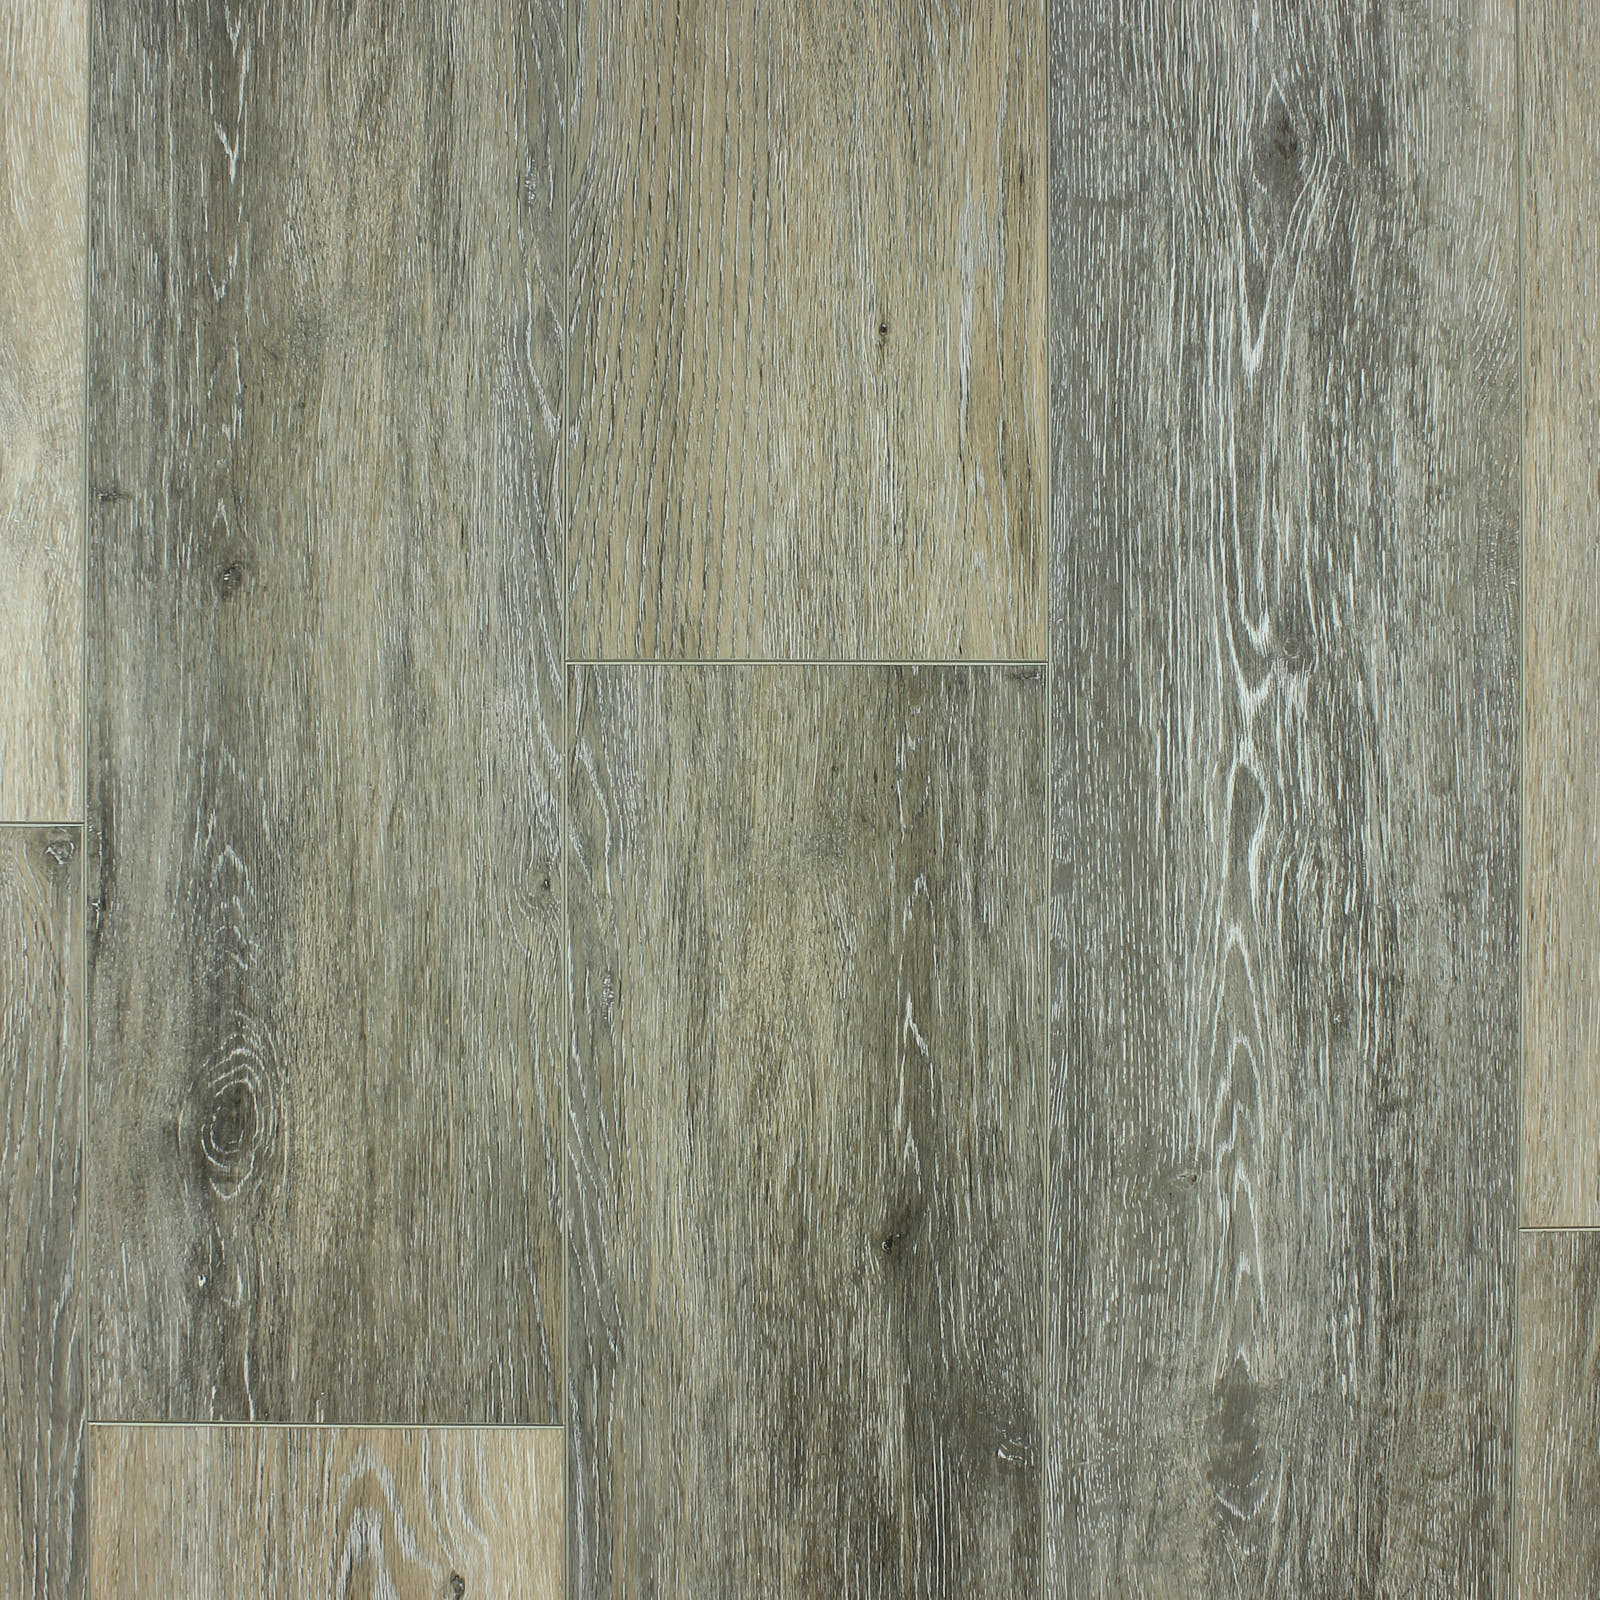 AquaSense Pinnacle Engineered Vinyl Plank Flooring